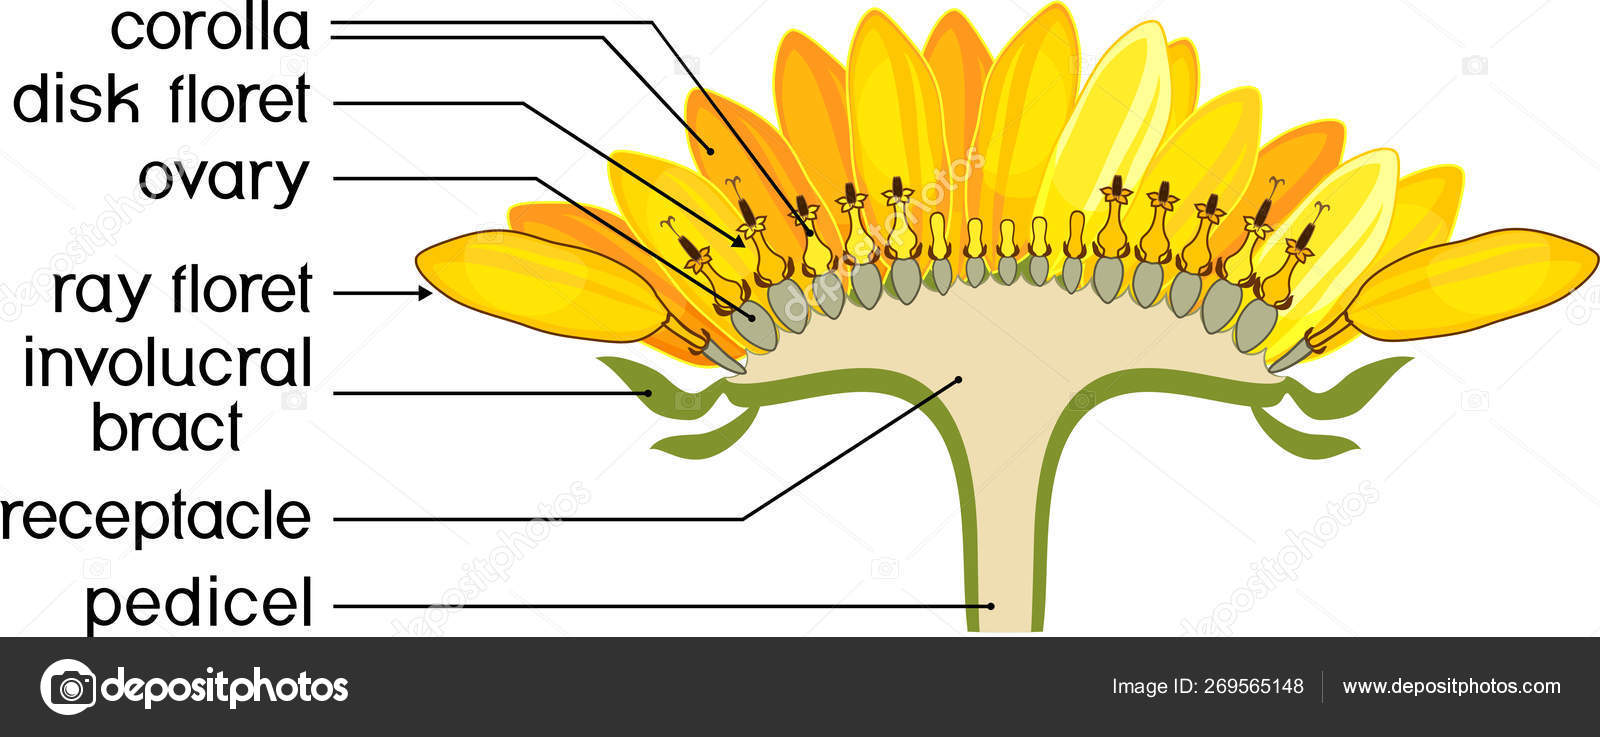 hight resolution of structure of flower of sunflower in cross section diagram of flower head or pseudanthium parts of sunflower with titles vector by